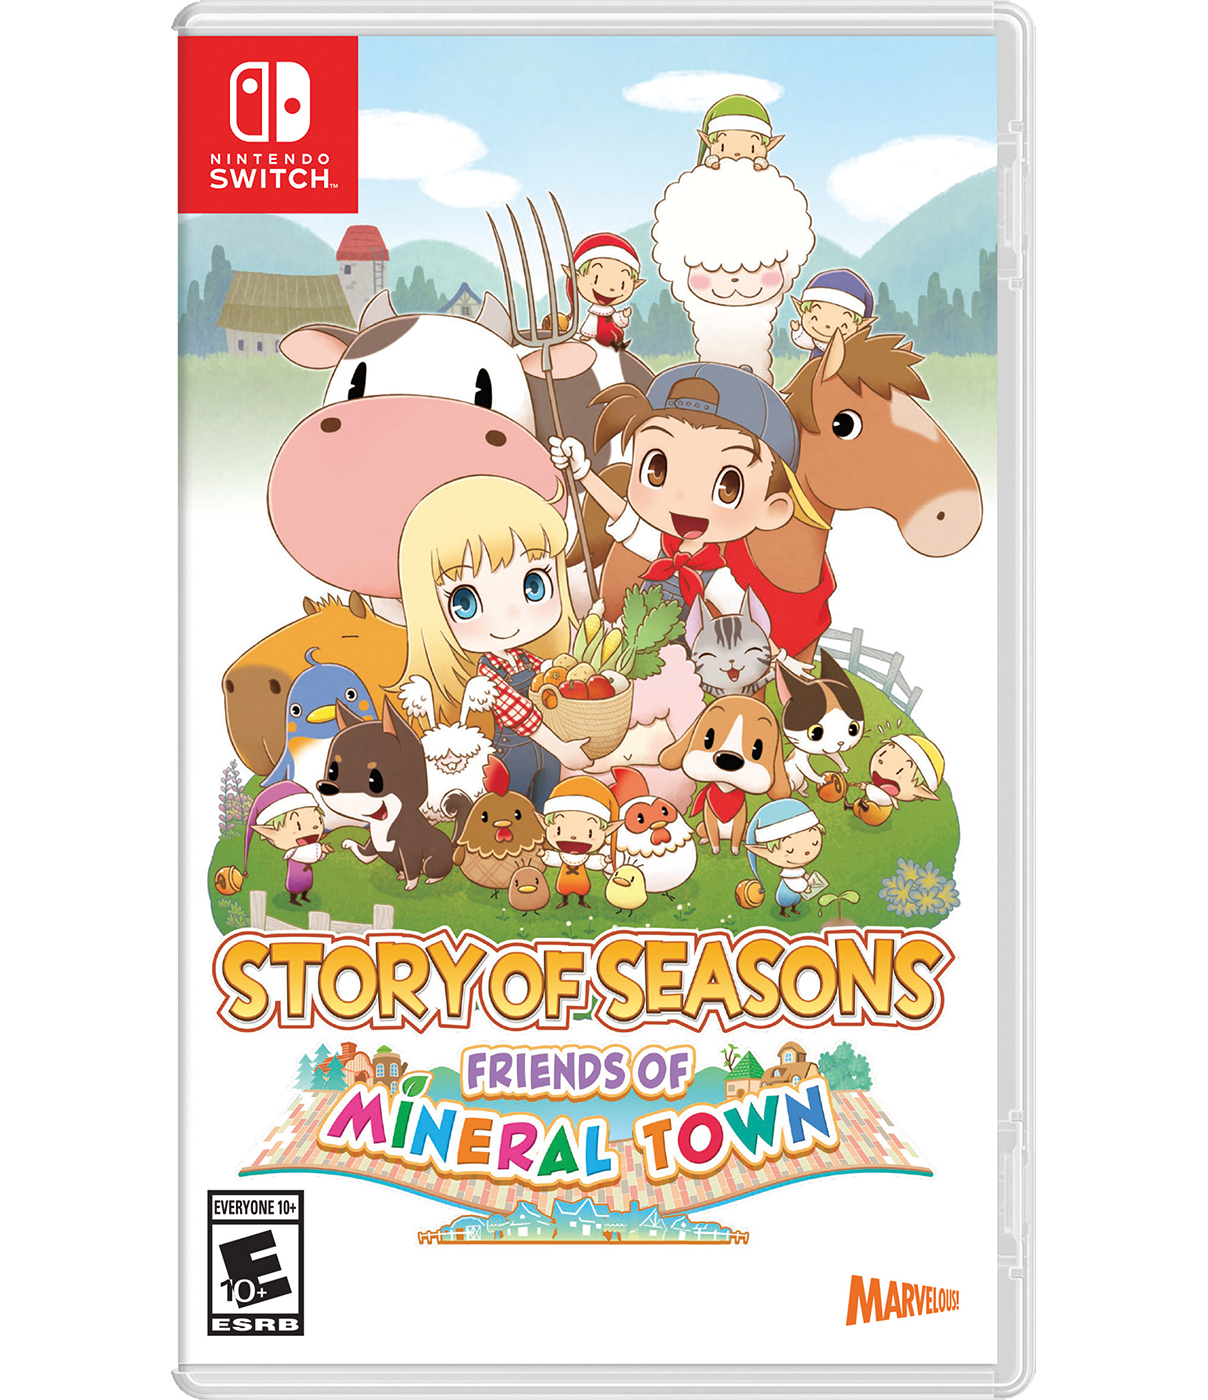 STORY OF SEASONS: Friends of Mineral Town - XSEED Games Store